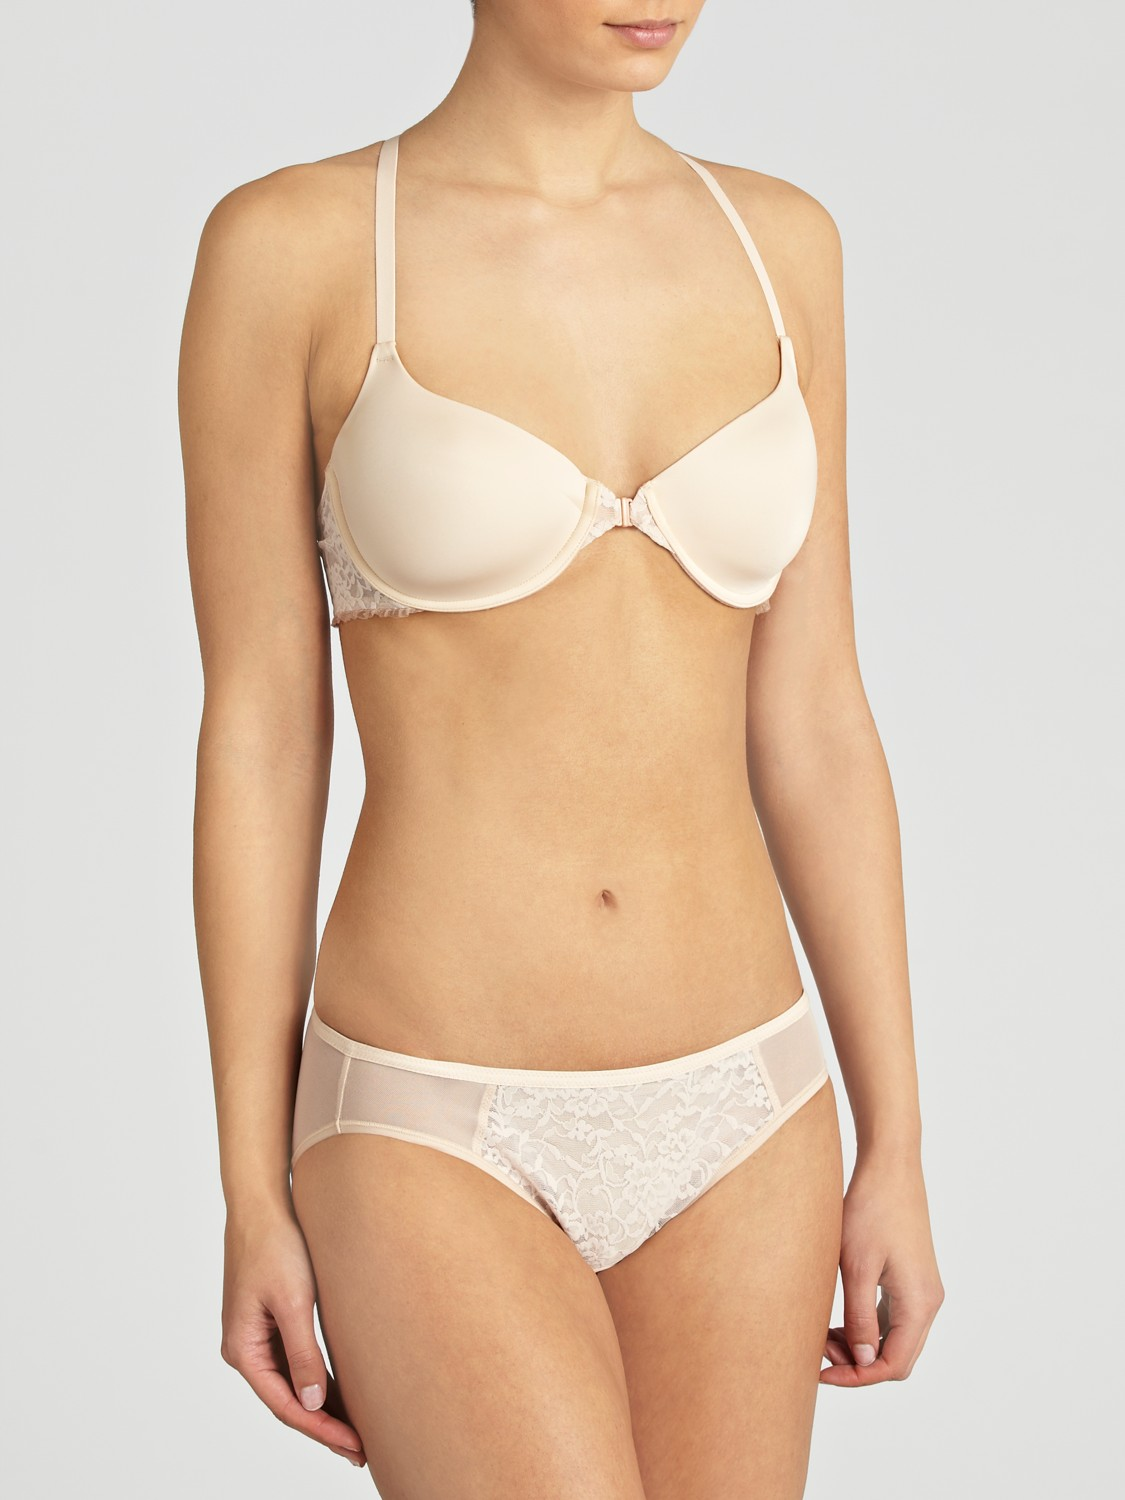 8ce29b57f77a0 Dkny Signature Lace T-back Bra in Natural - Lyst